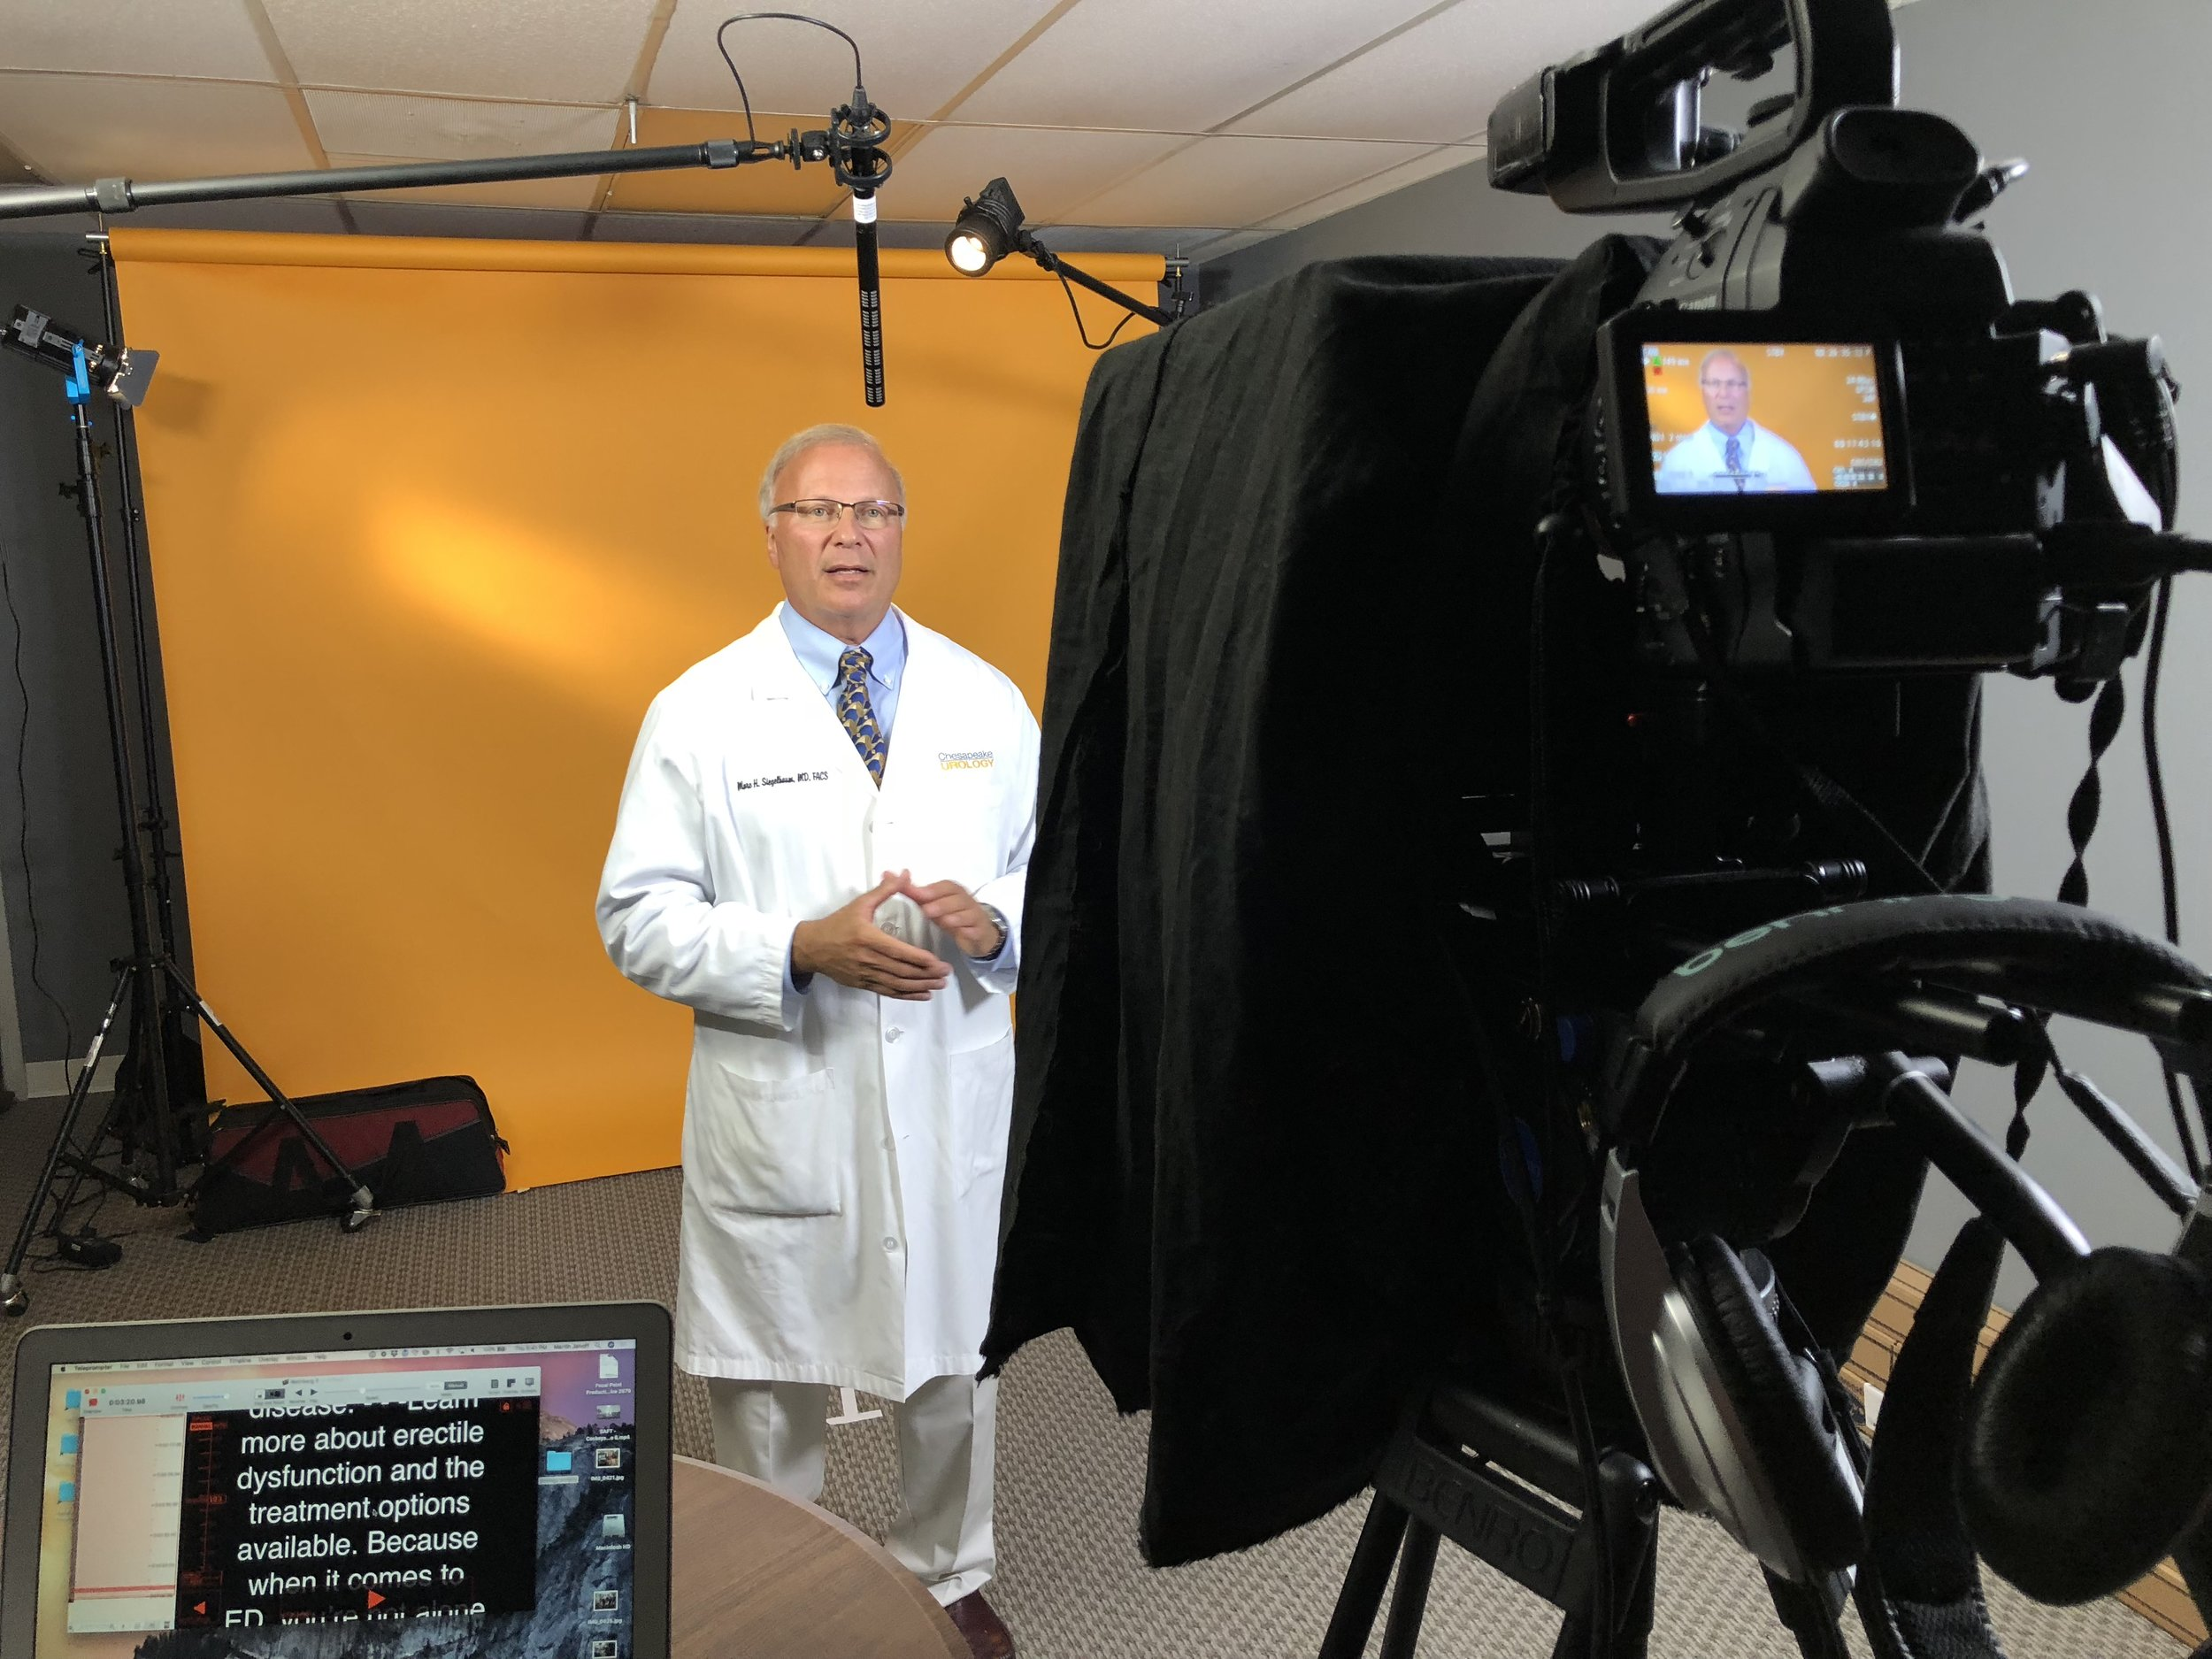 Dr. Marc H Siegelbaum in studio recording a promotional video.